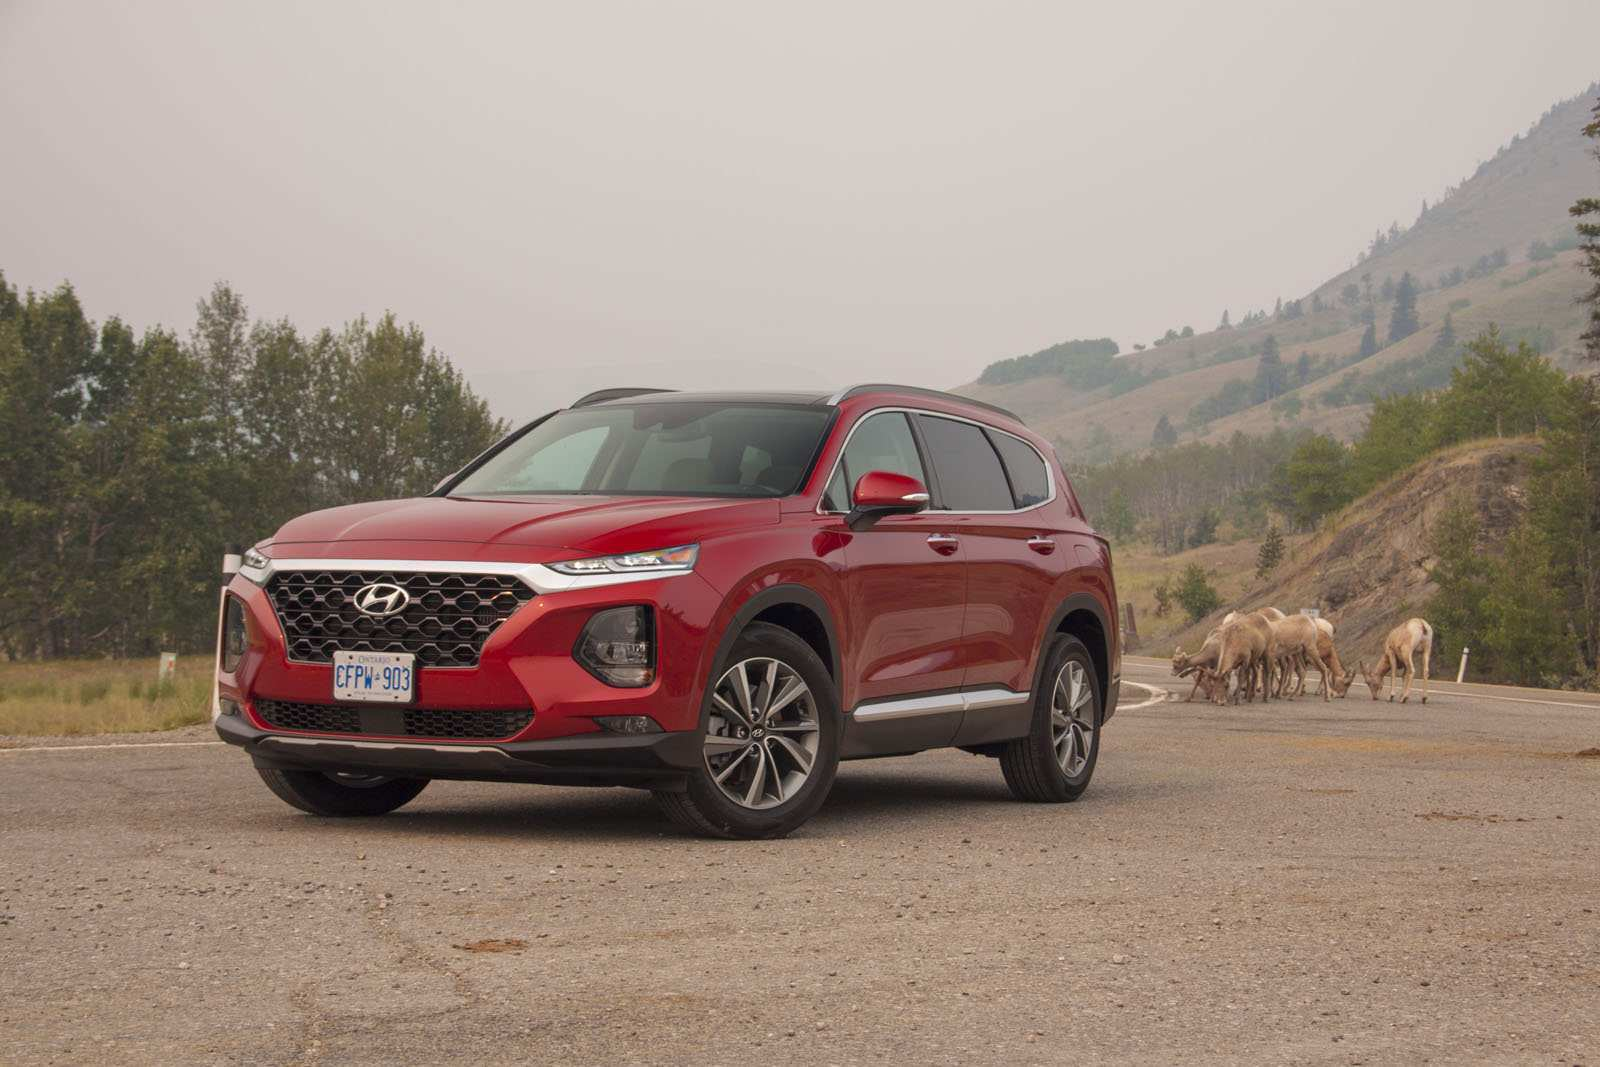 47 All New The Santa Fe Kia 2019 Rumors Images with The Santa Fe Kia 2019 Rumors